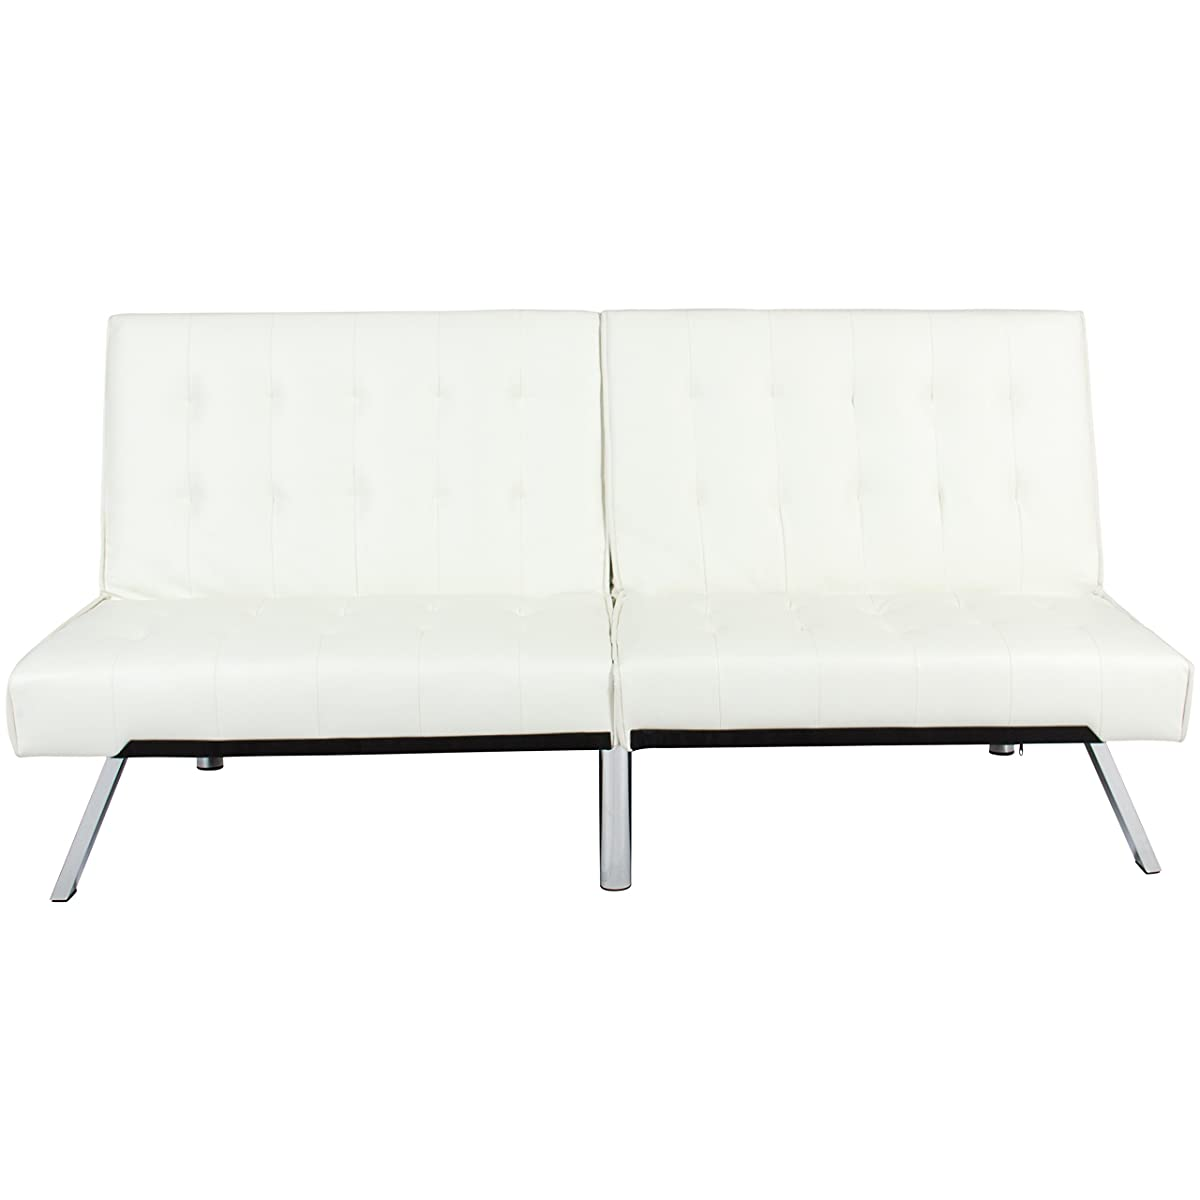 20 Choices Of White Leather Sofas: Best Choice Products Modern Leather Futon Sofa Bed Fold Up